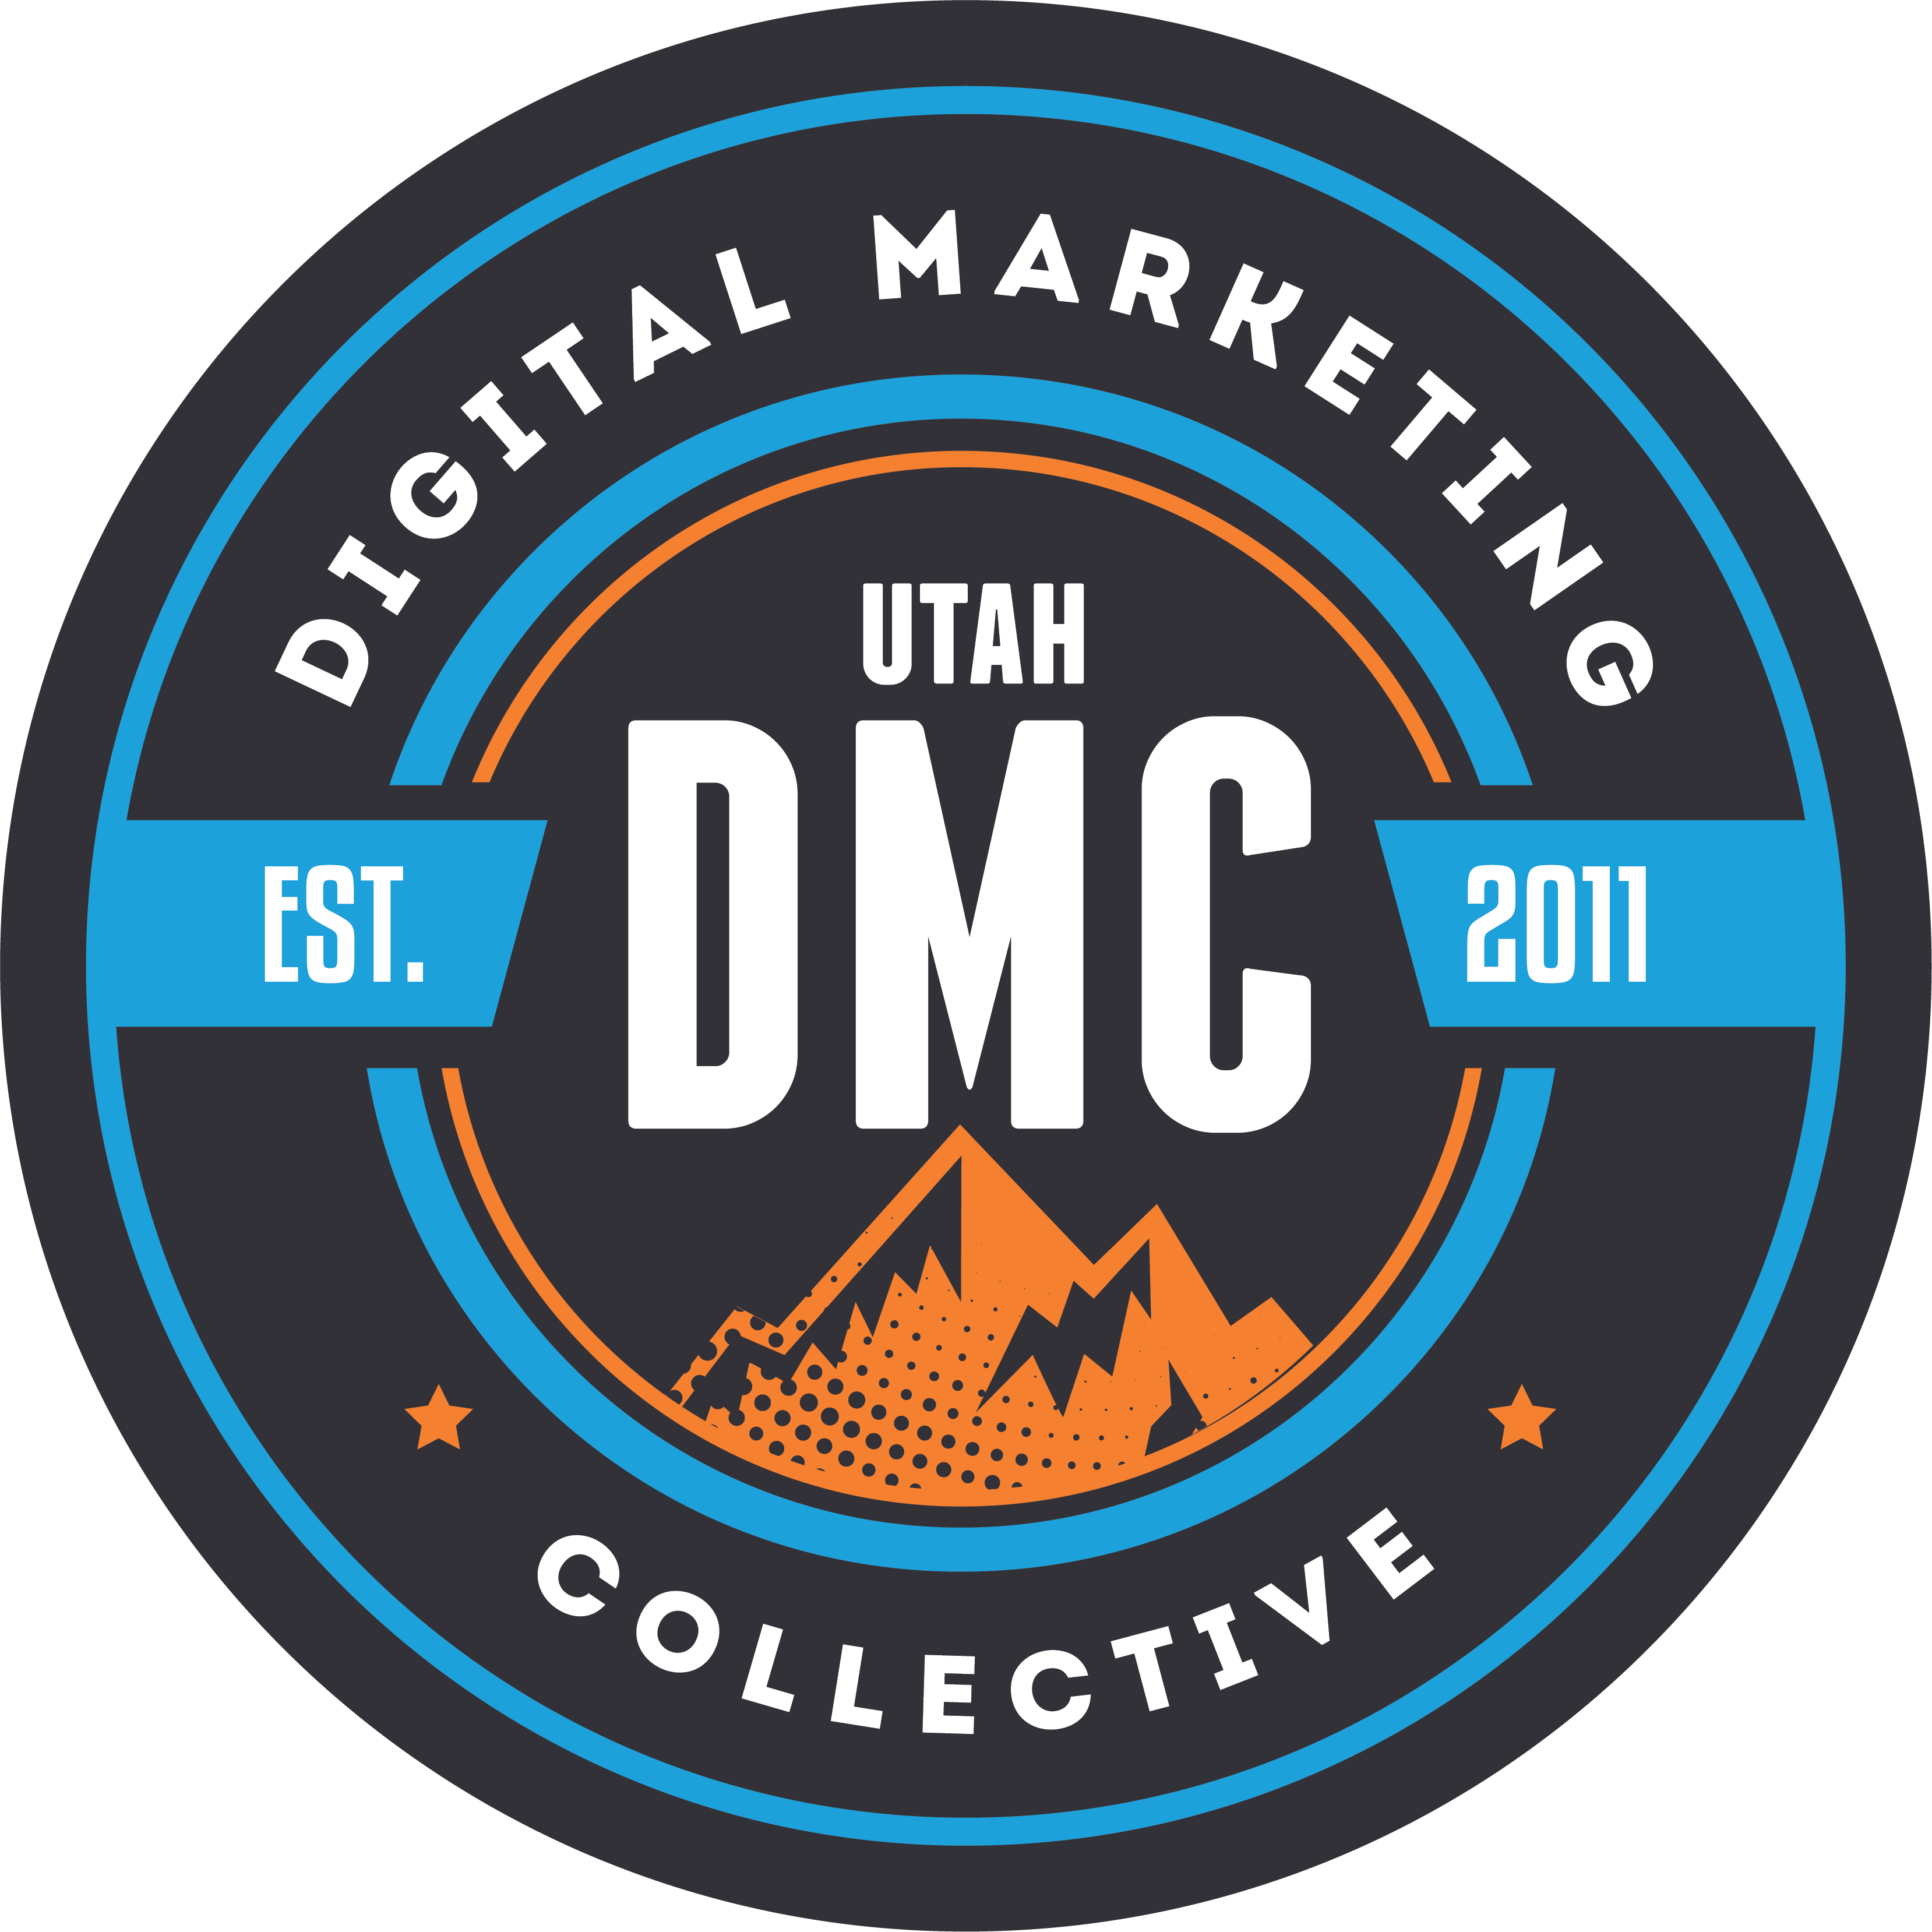 Utah DMC - Digital Marketing Collective